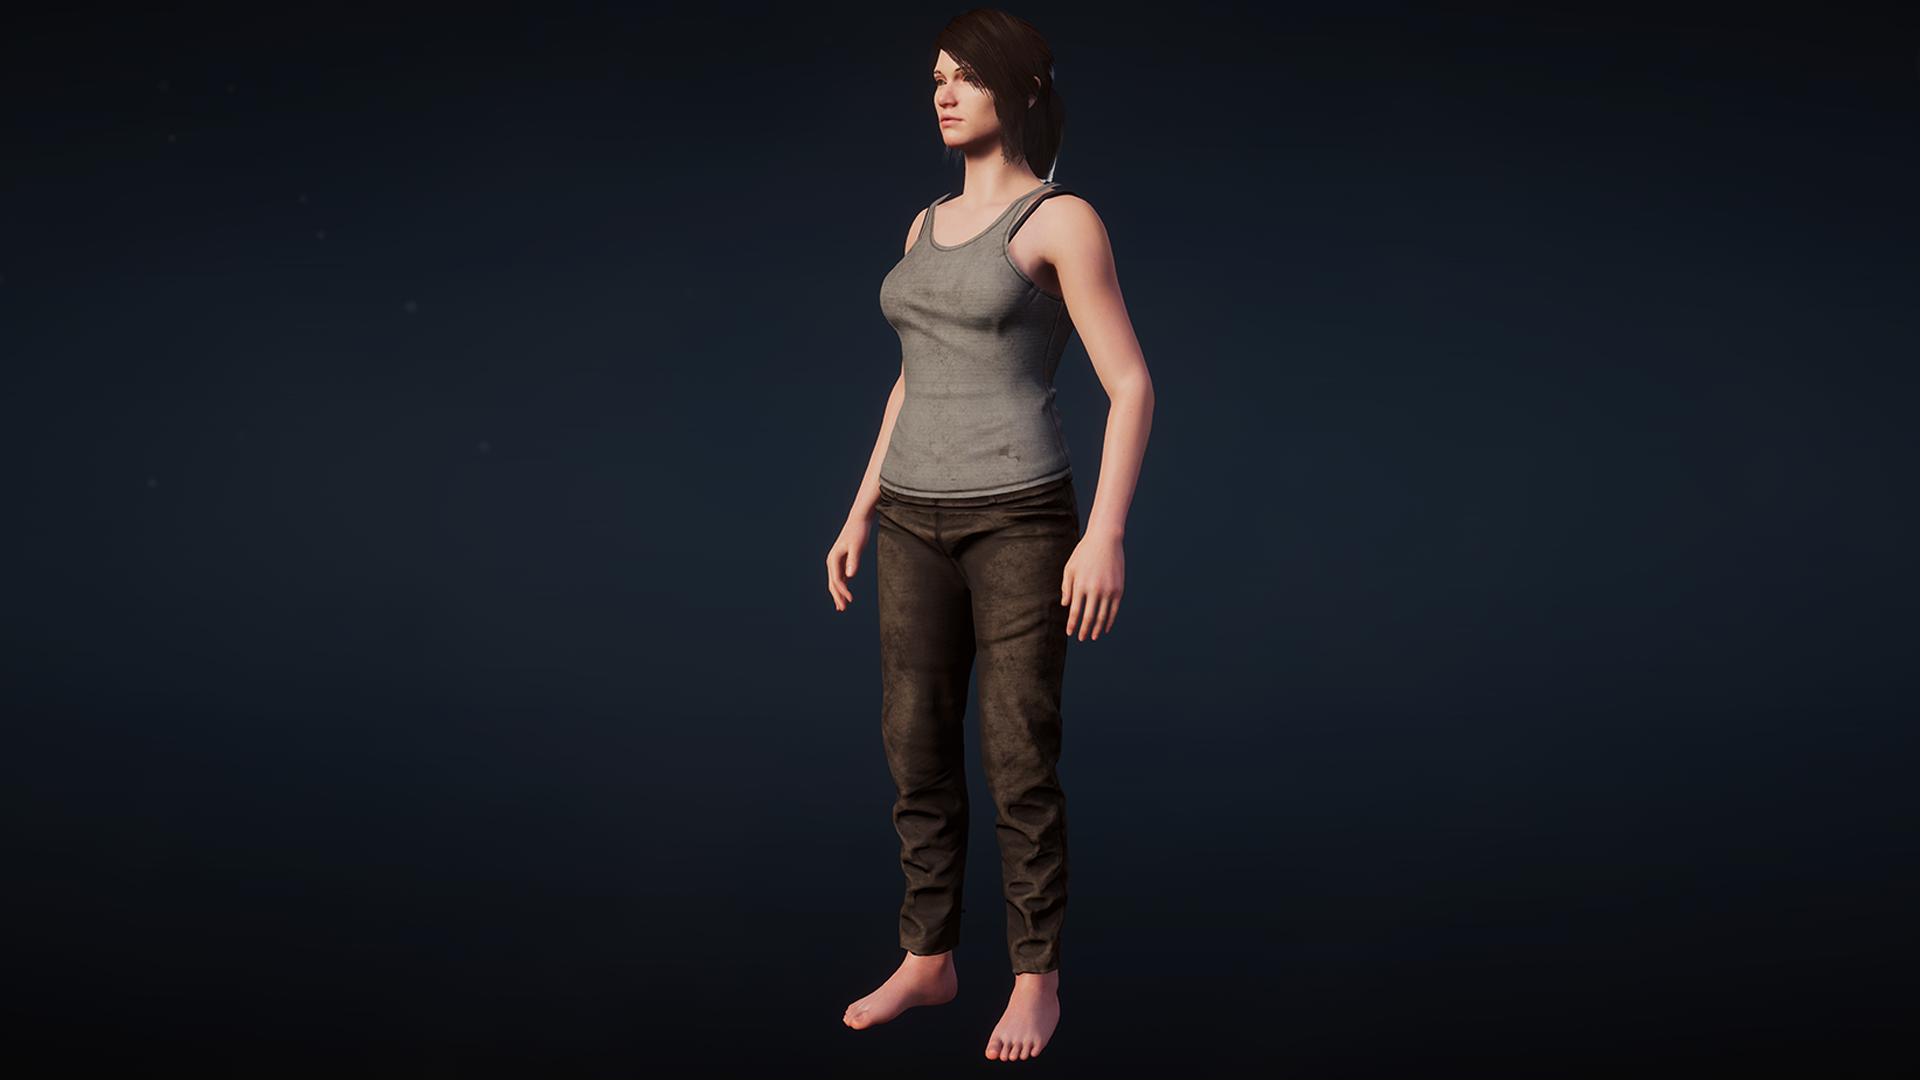 Character Creator by CB Productions in Blueprints - UE4